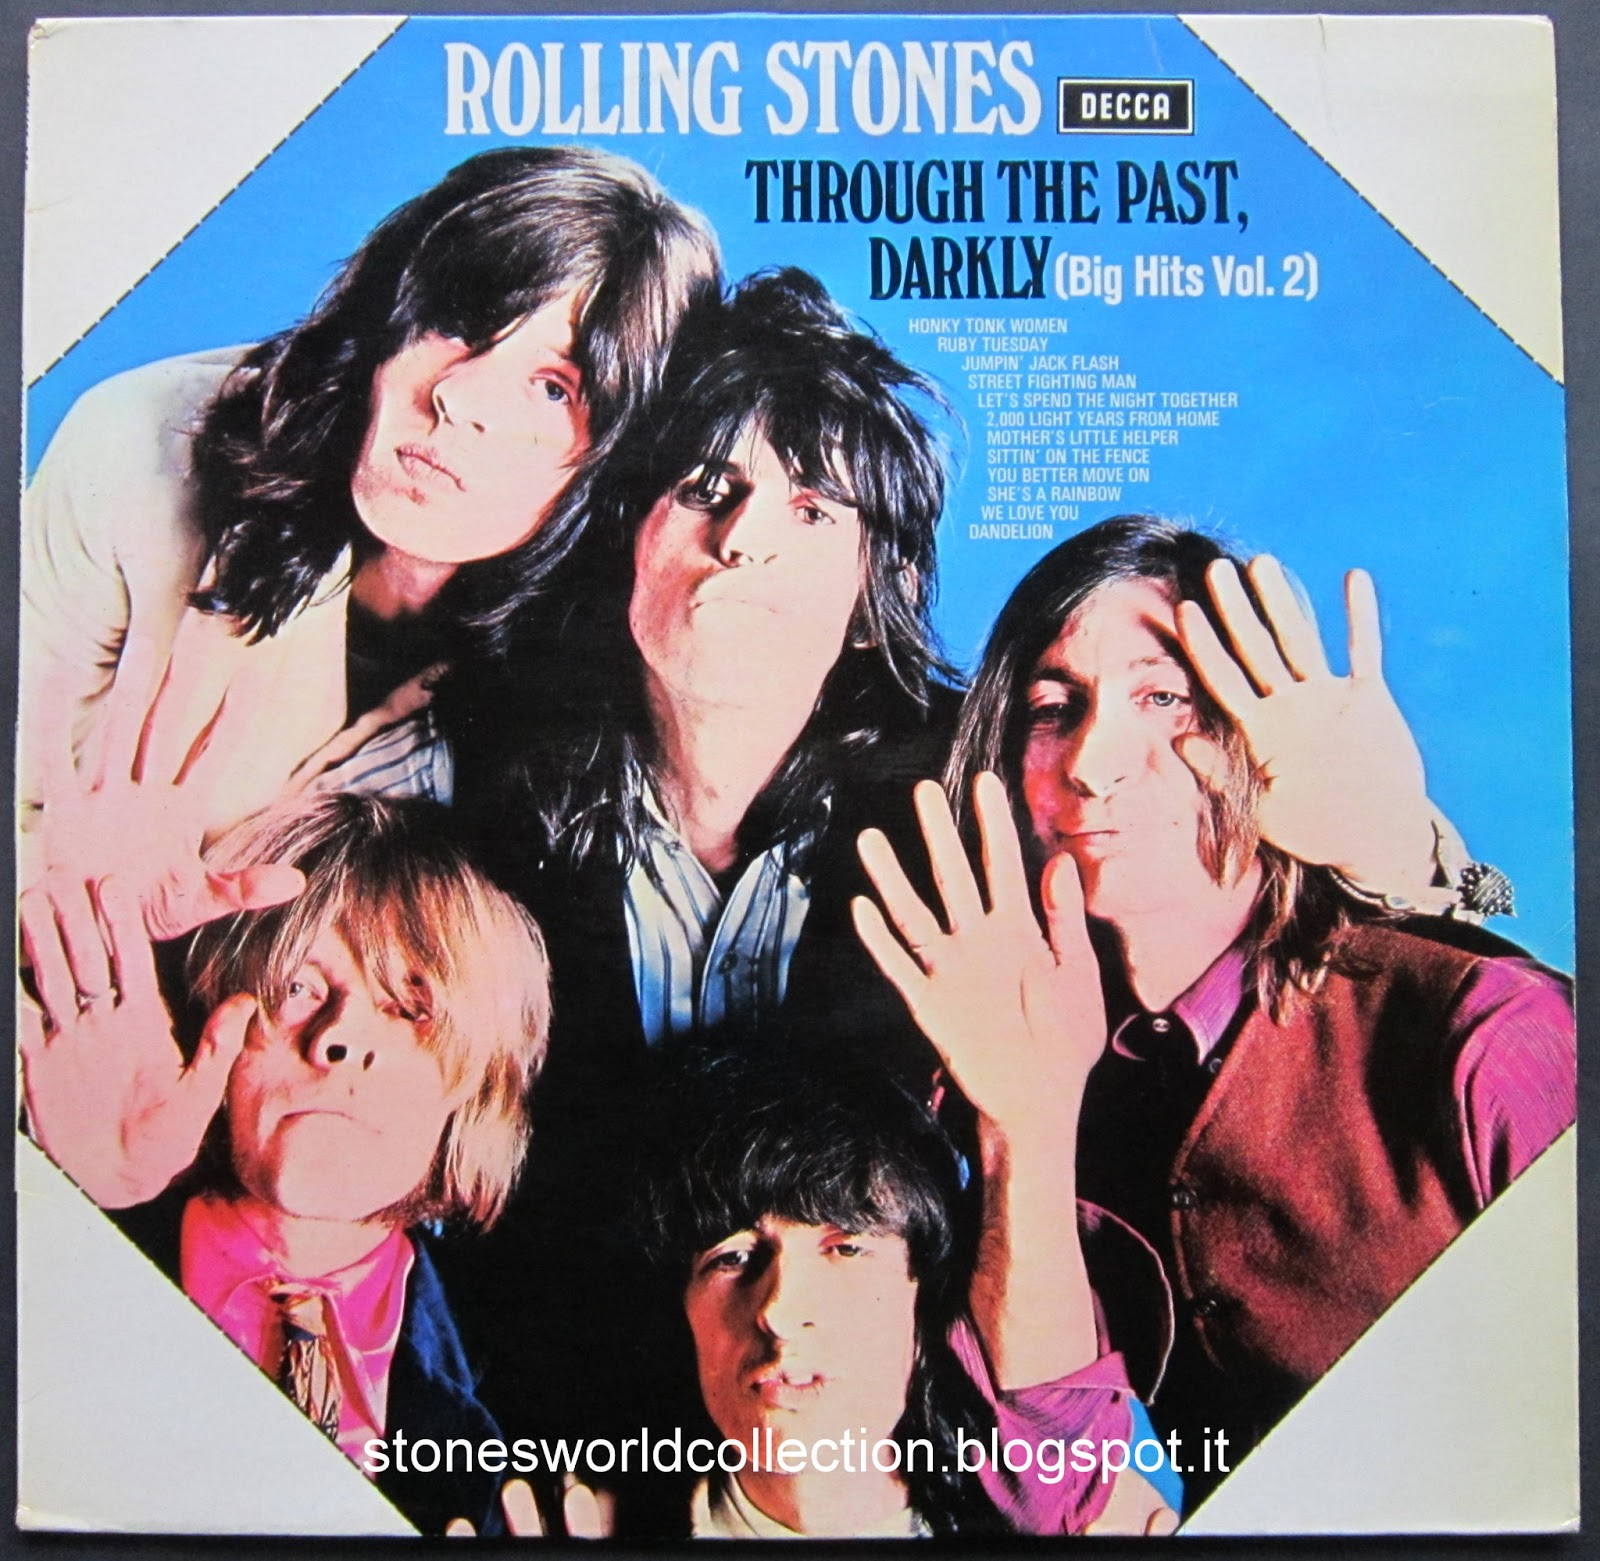 Stonesworldcollection through the past darkly do it yourself in usa army stores when the soldiers were stationed in various place in germany throughout the 1960s sourse maus book rolling stones worldwide iii solutioingenieria Images